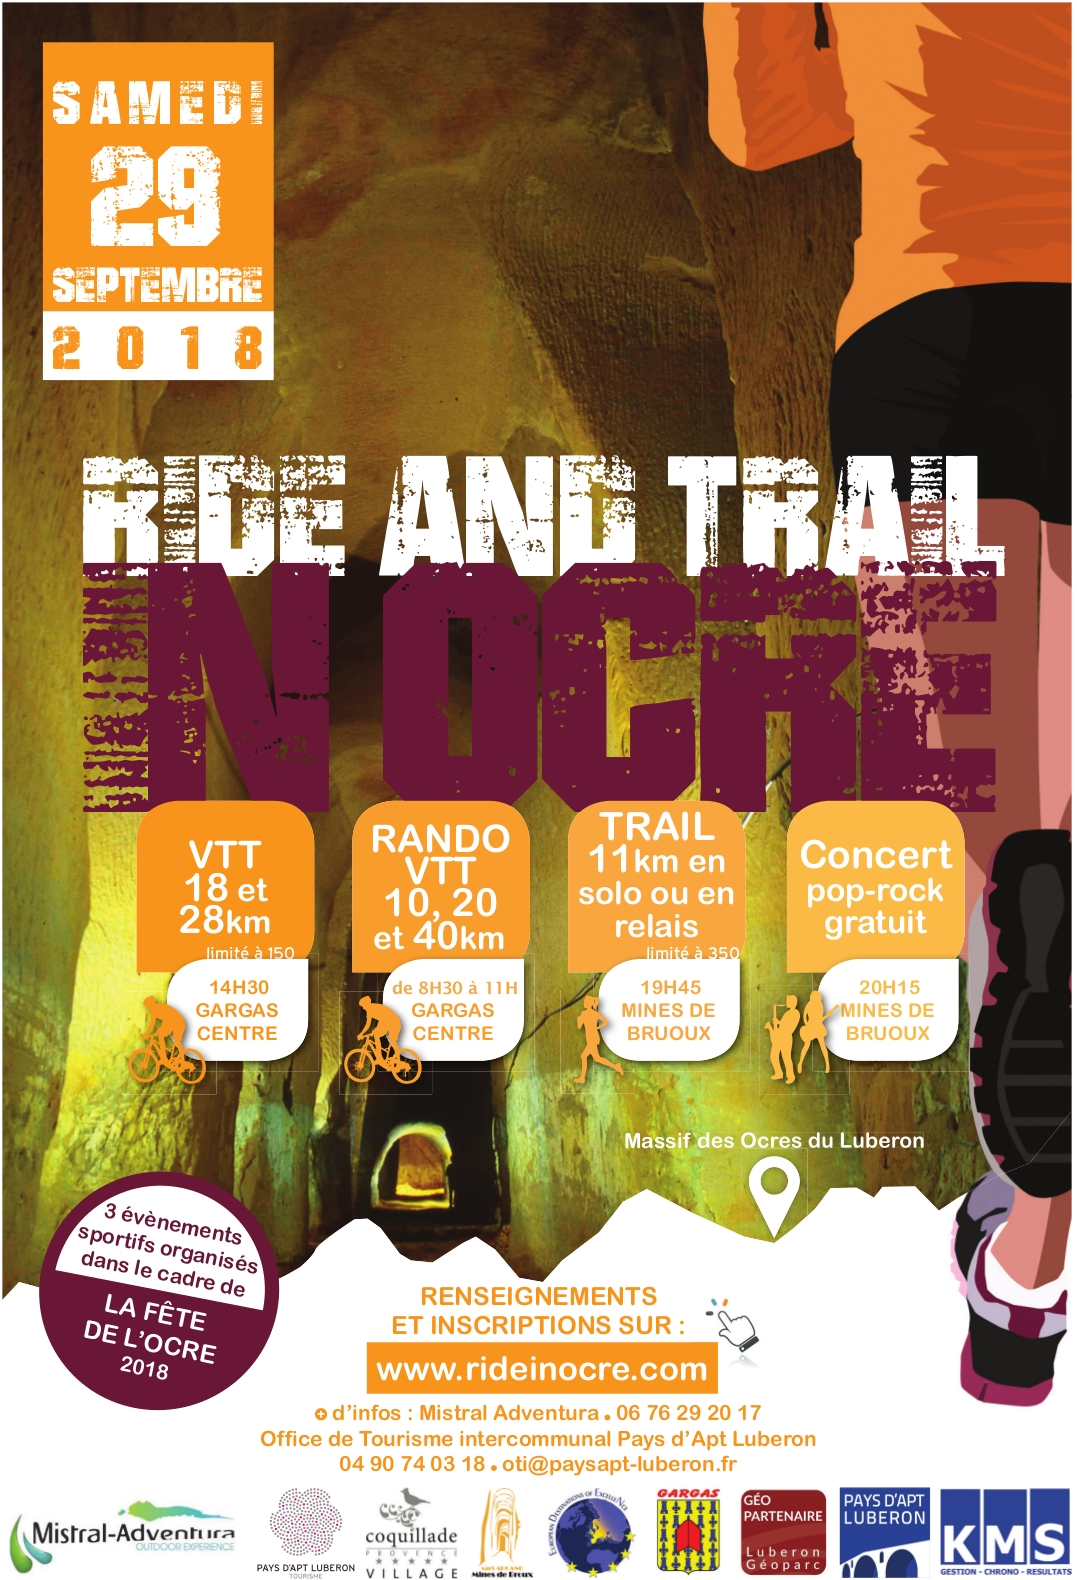 Ride & Trail In Ocre : Trail 11Km - Relais x 2